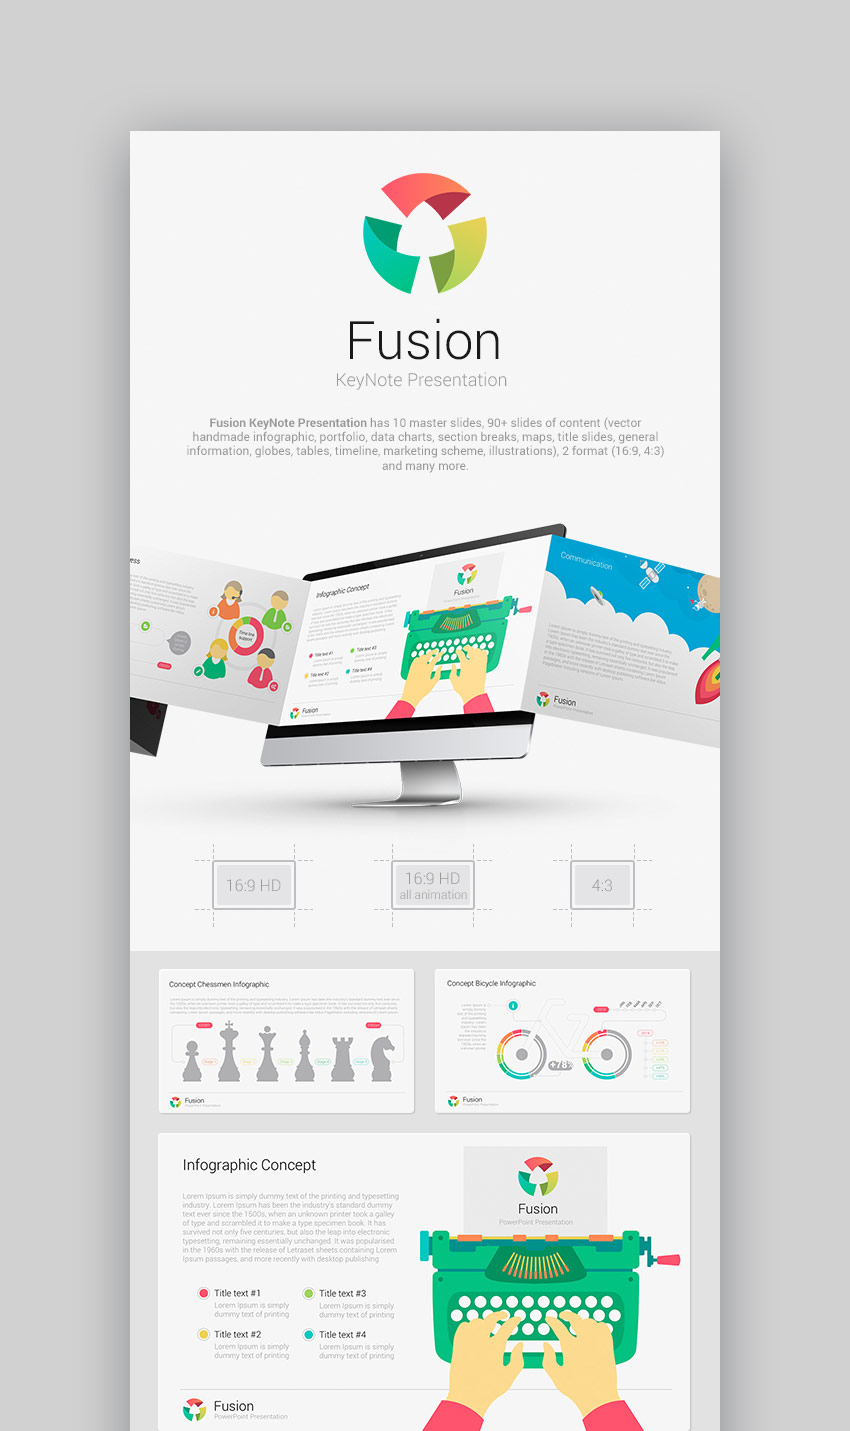 30 Best Keynote Presentation Templates (Designs For Mac Users)